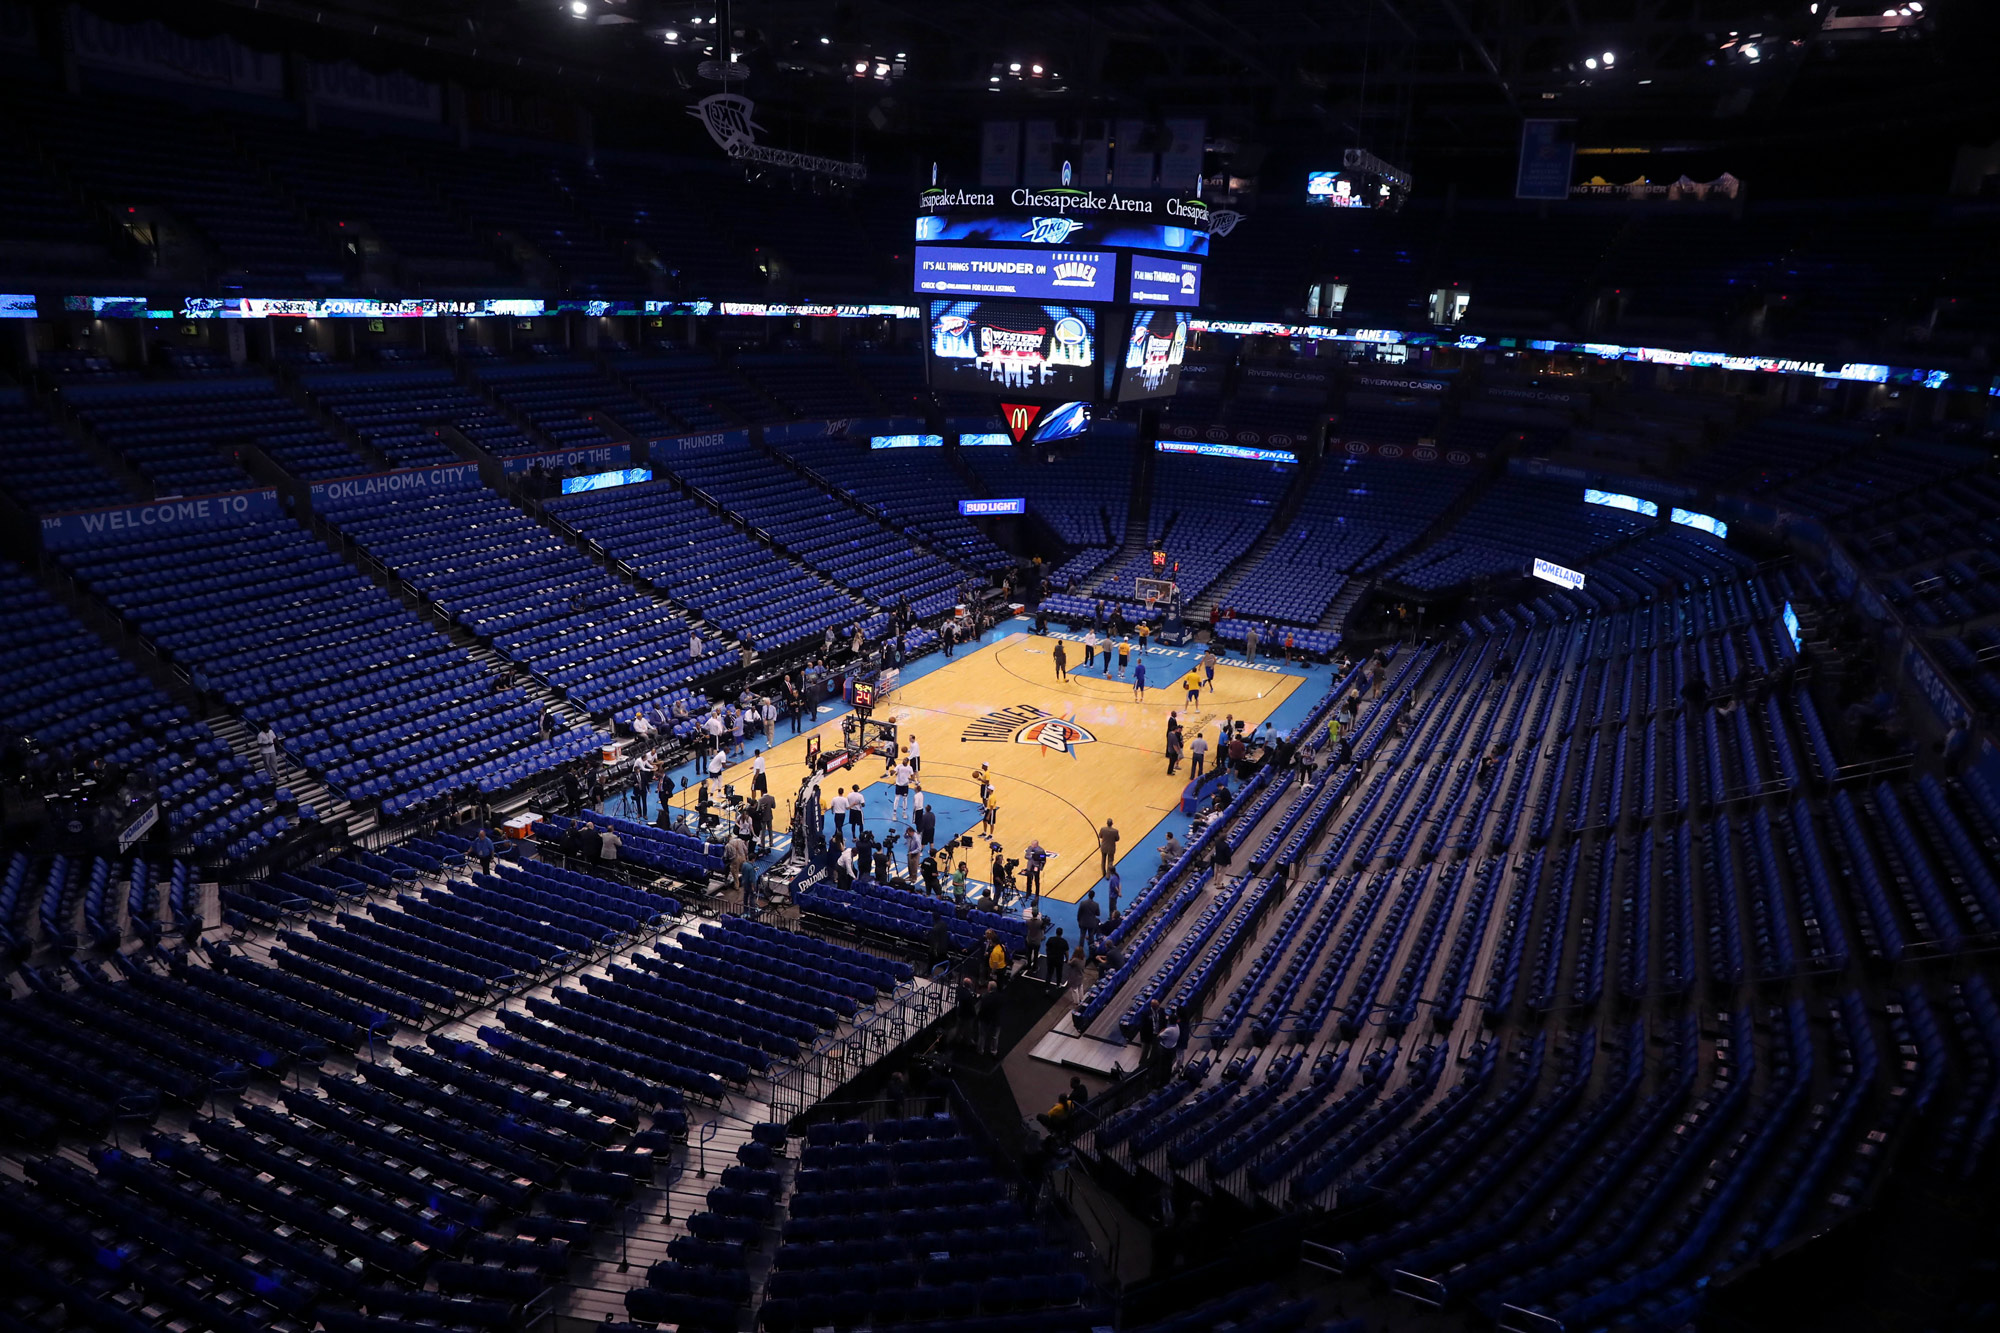 A general view of the court is seen before a game at Chesapeake Energy Arena in Oklahoma City on May 28, 2016.